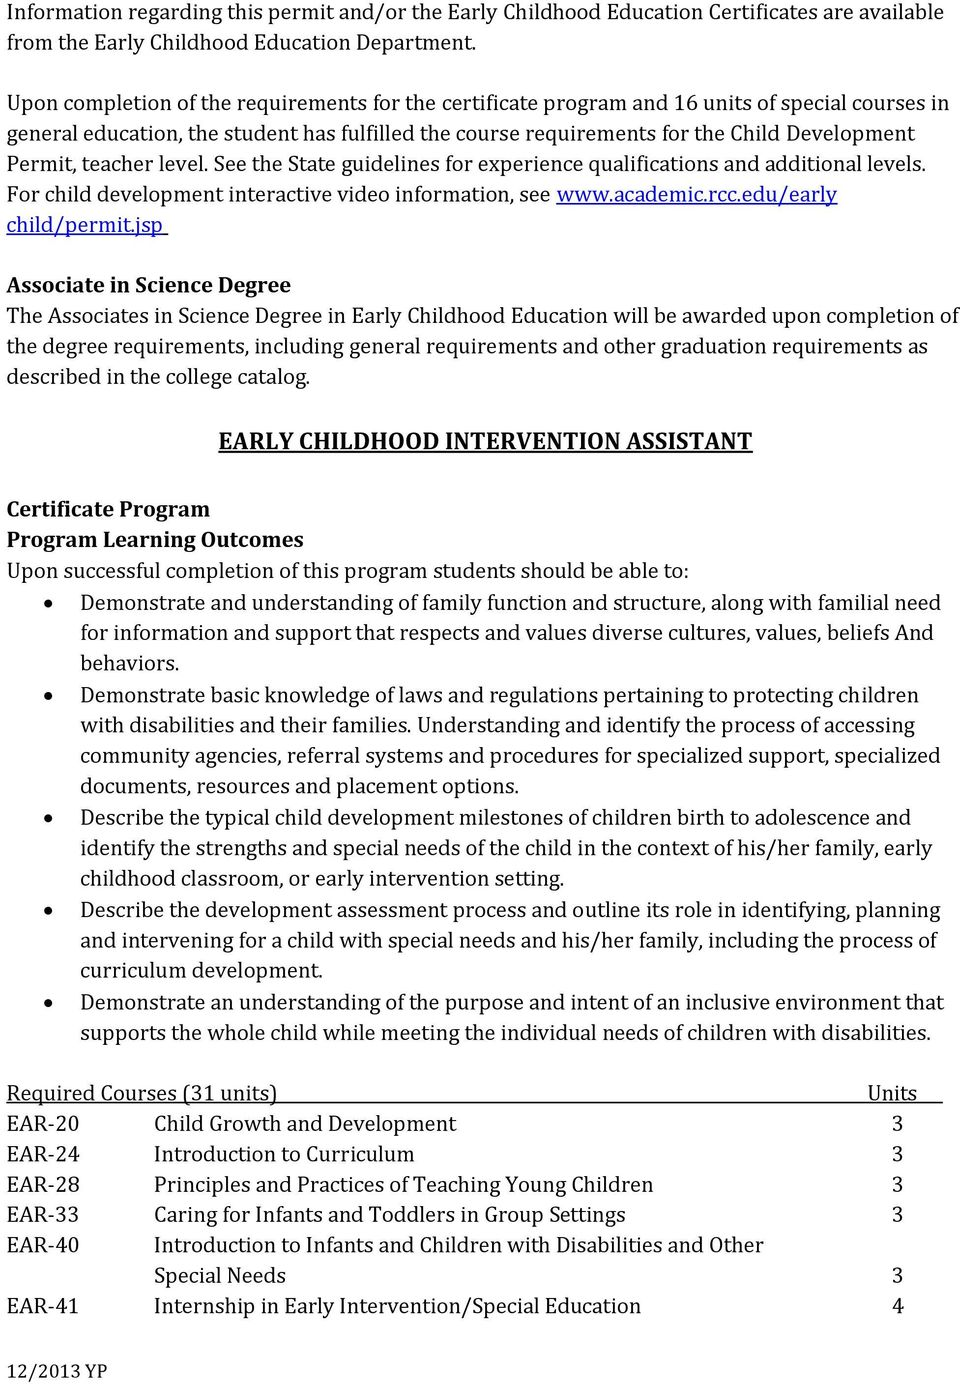 Permit, teacher level. See the State guidelines for experience qualifications and additional levels. For child development interactive video information, see www.academic.rcc.edu/early child/permit.